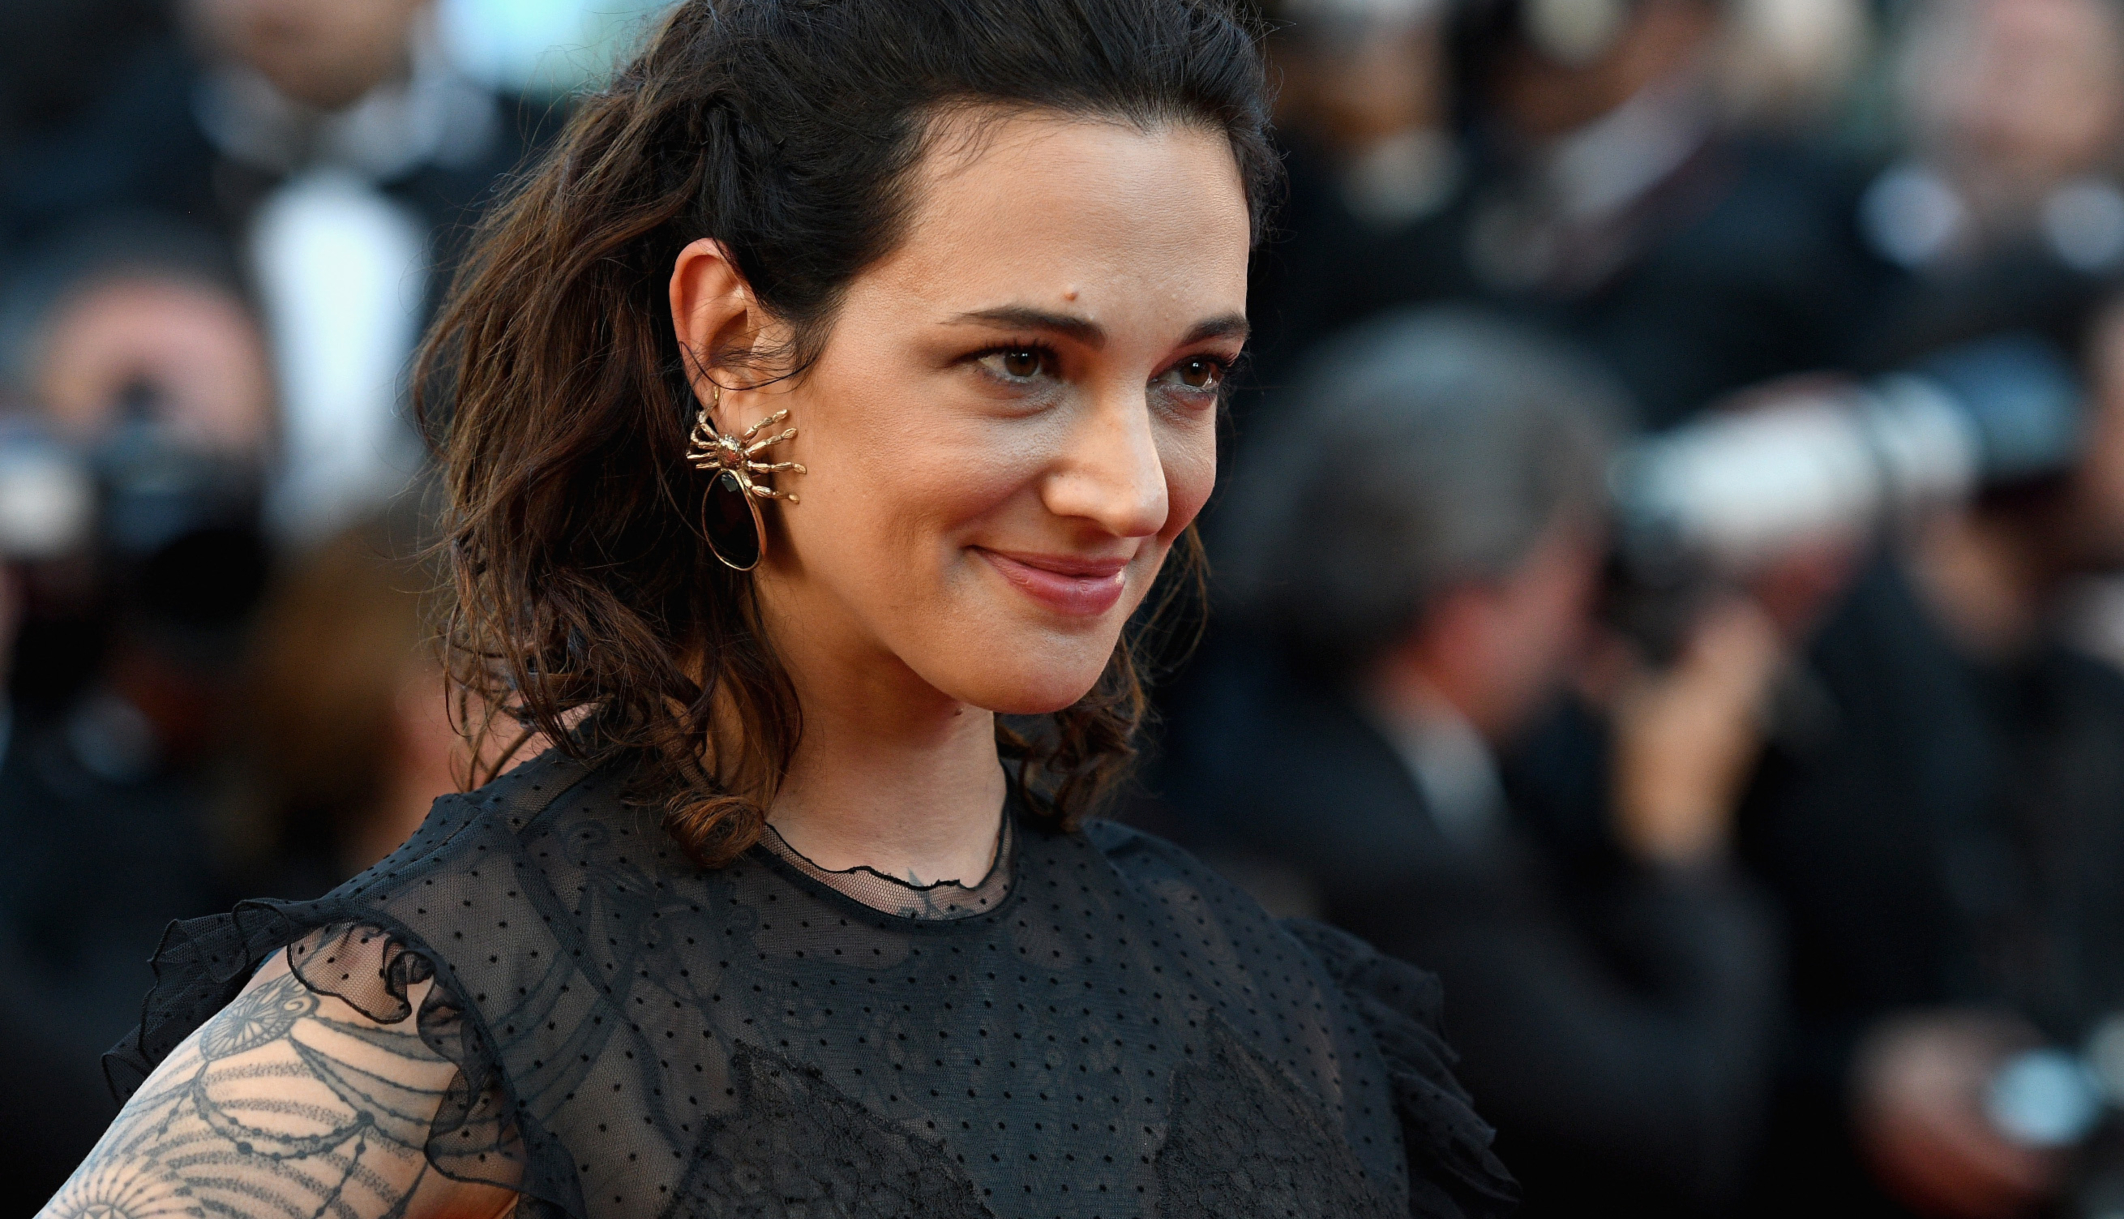 Rain Dove Confirms Turning Over Incriminating Asia Argento Texts To Police, Explains Why